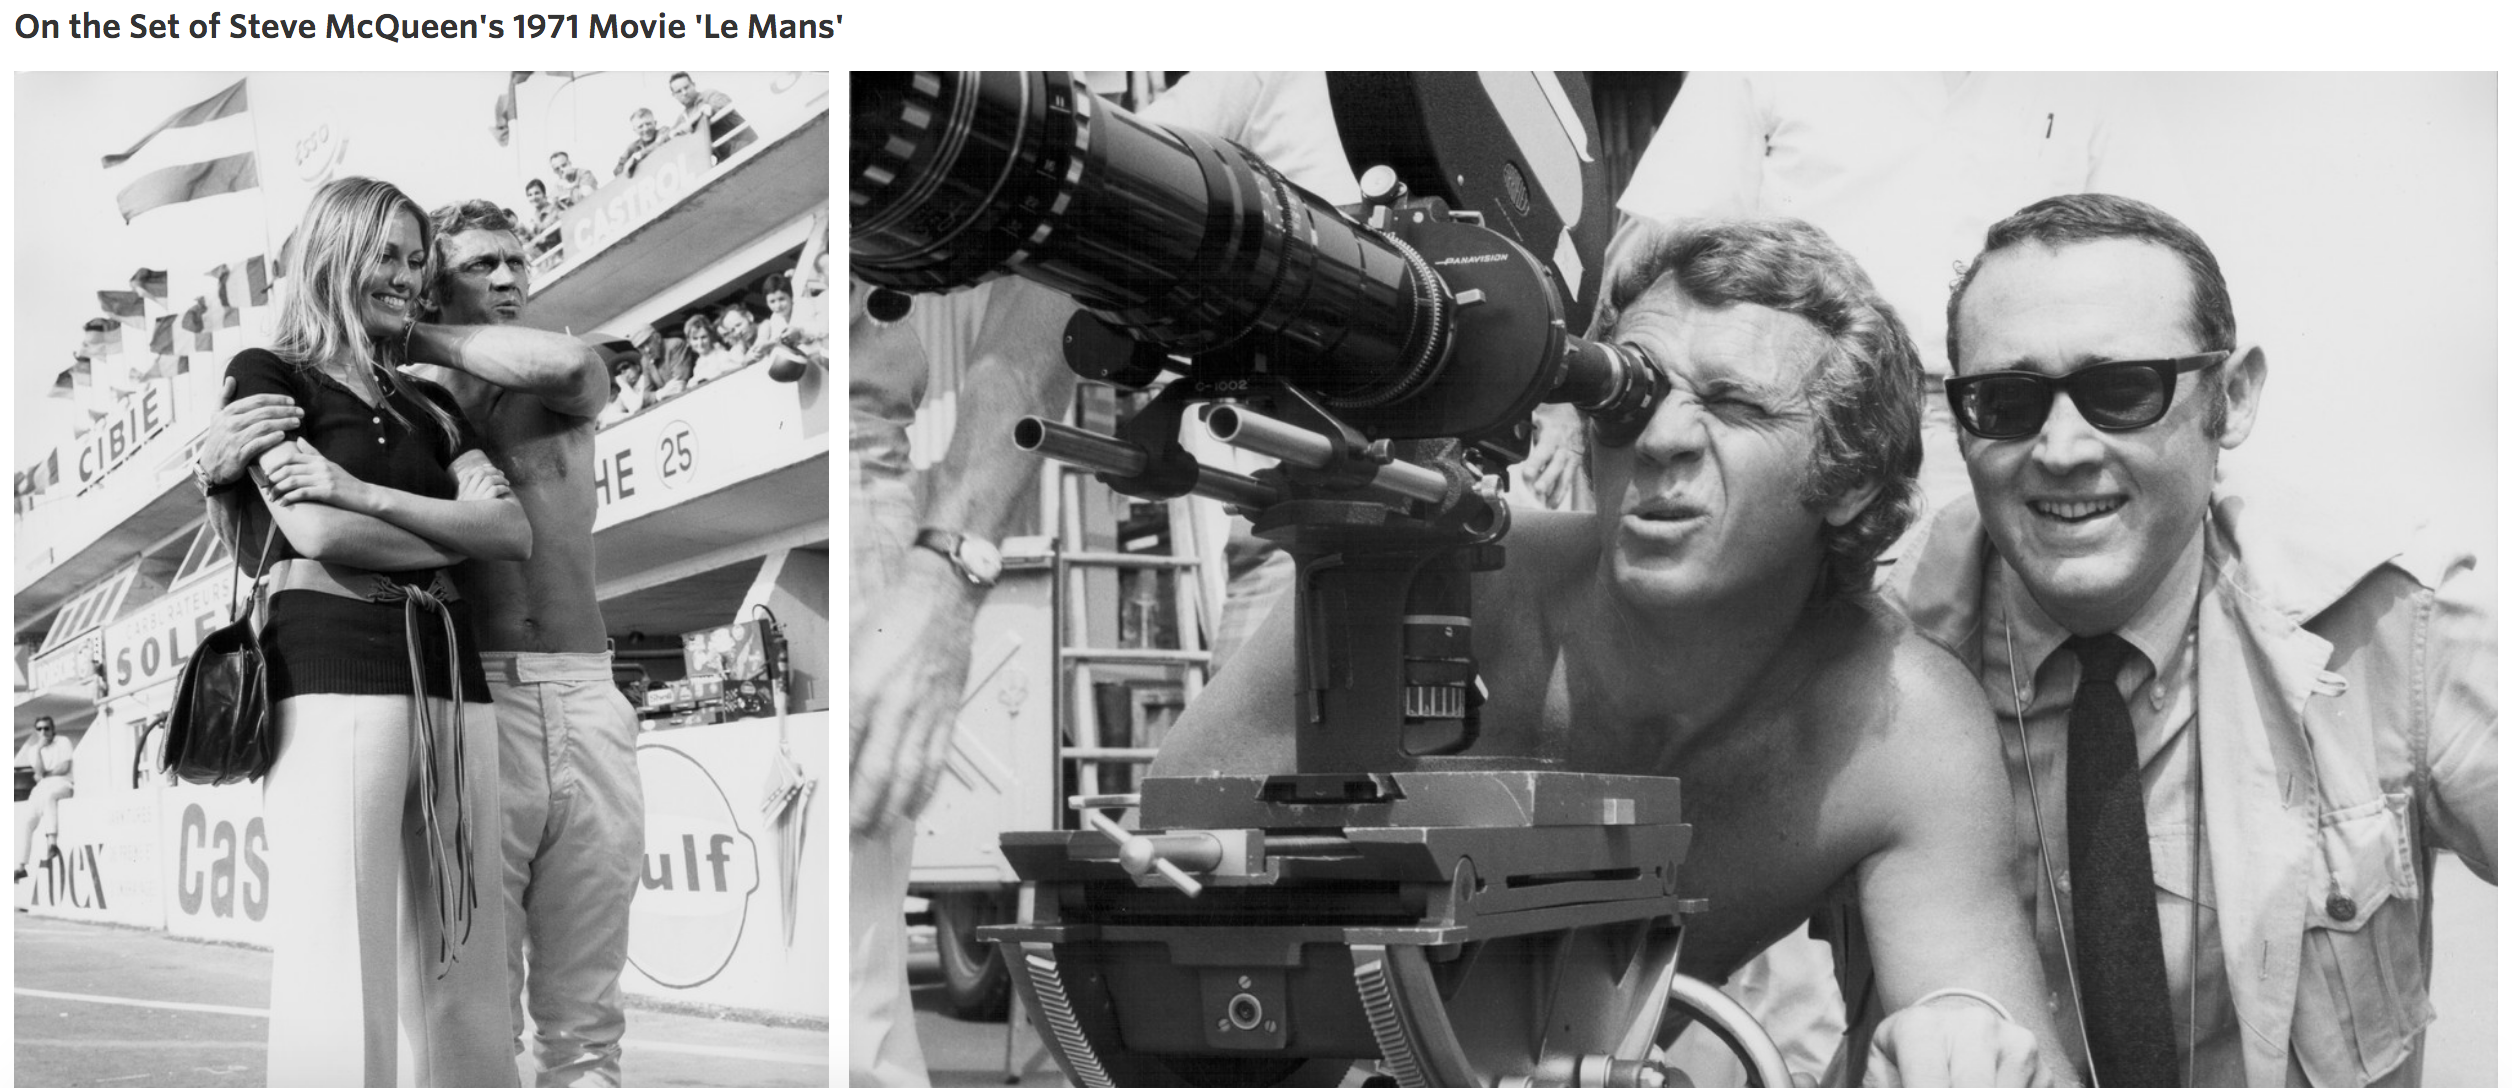 Weekend Reading: The Wall Street Journal Goes Hunting For Steve McQueen's Monaco Weekend Reading: The Wall Street Journal Goes Hunting For Steve McQueen's Monaco Screen Shot 2016 11 20 at 10